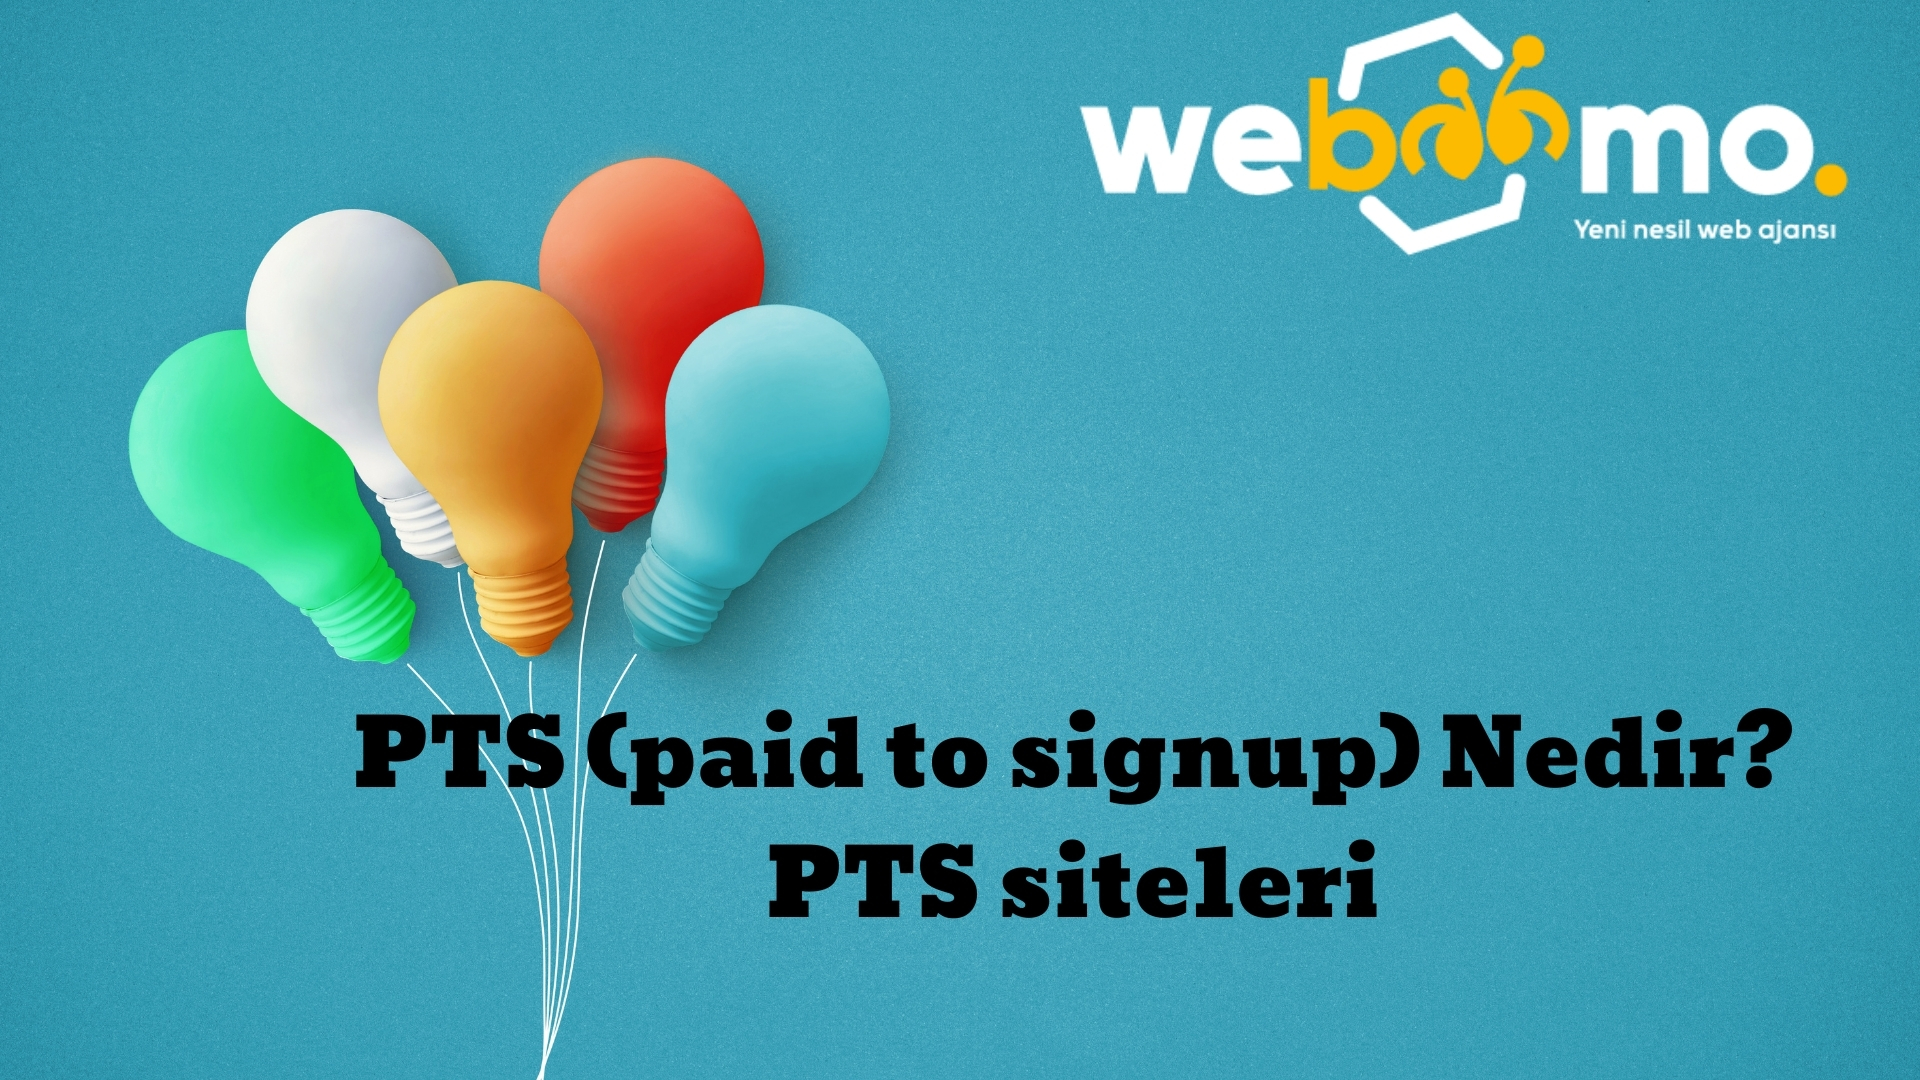 PTS (paid to signup) Nedir PTS siteleri